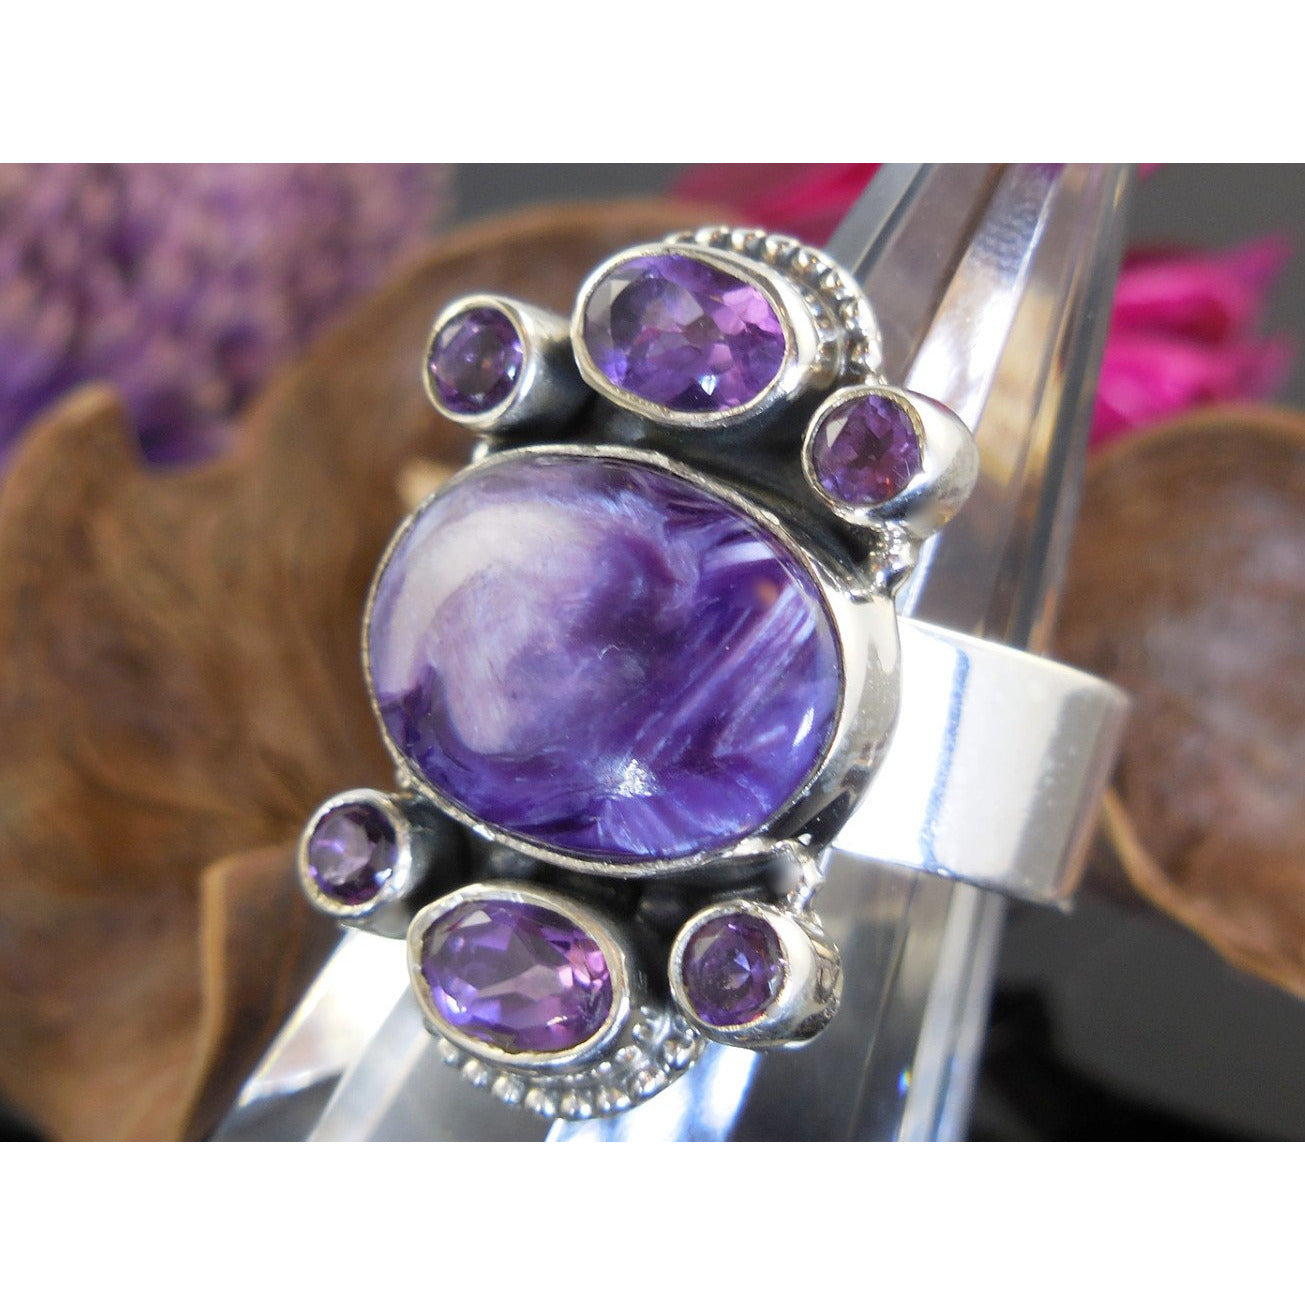 Charoite & Amethyst Quartz Sterling Silver Ring - Size 6.5